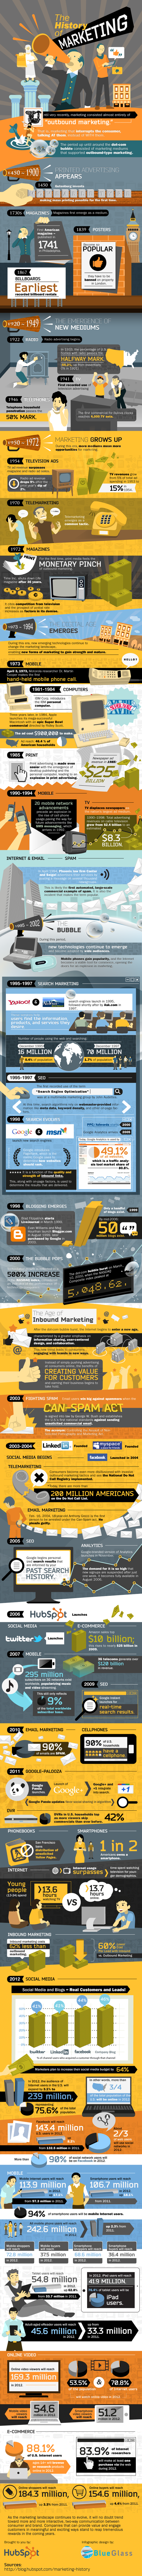 Istoria de Marketing Infographic